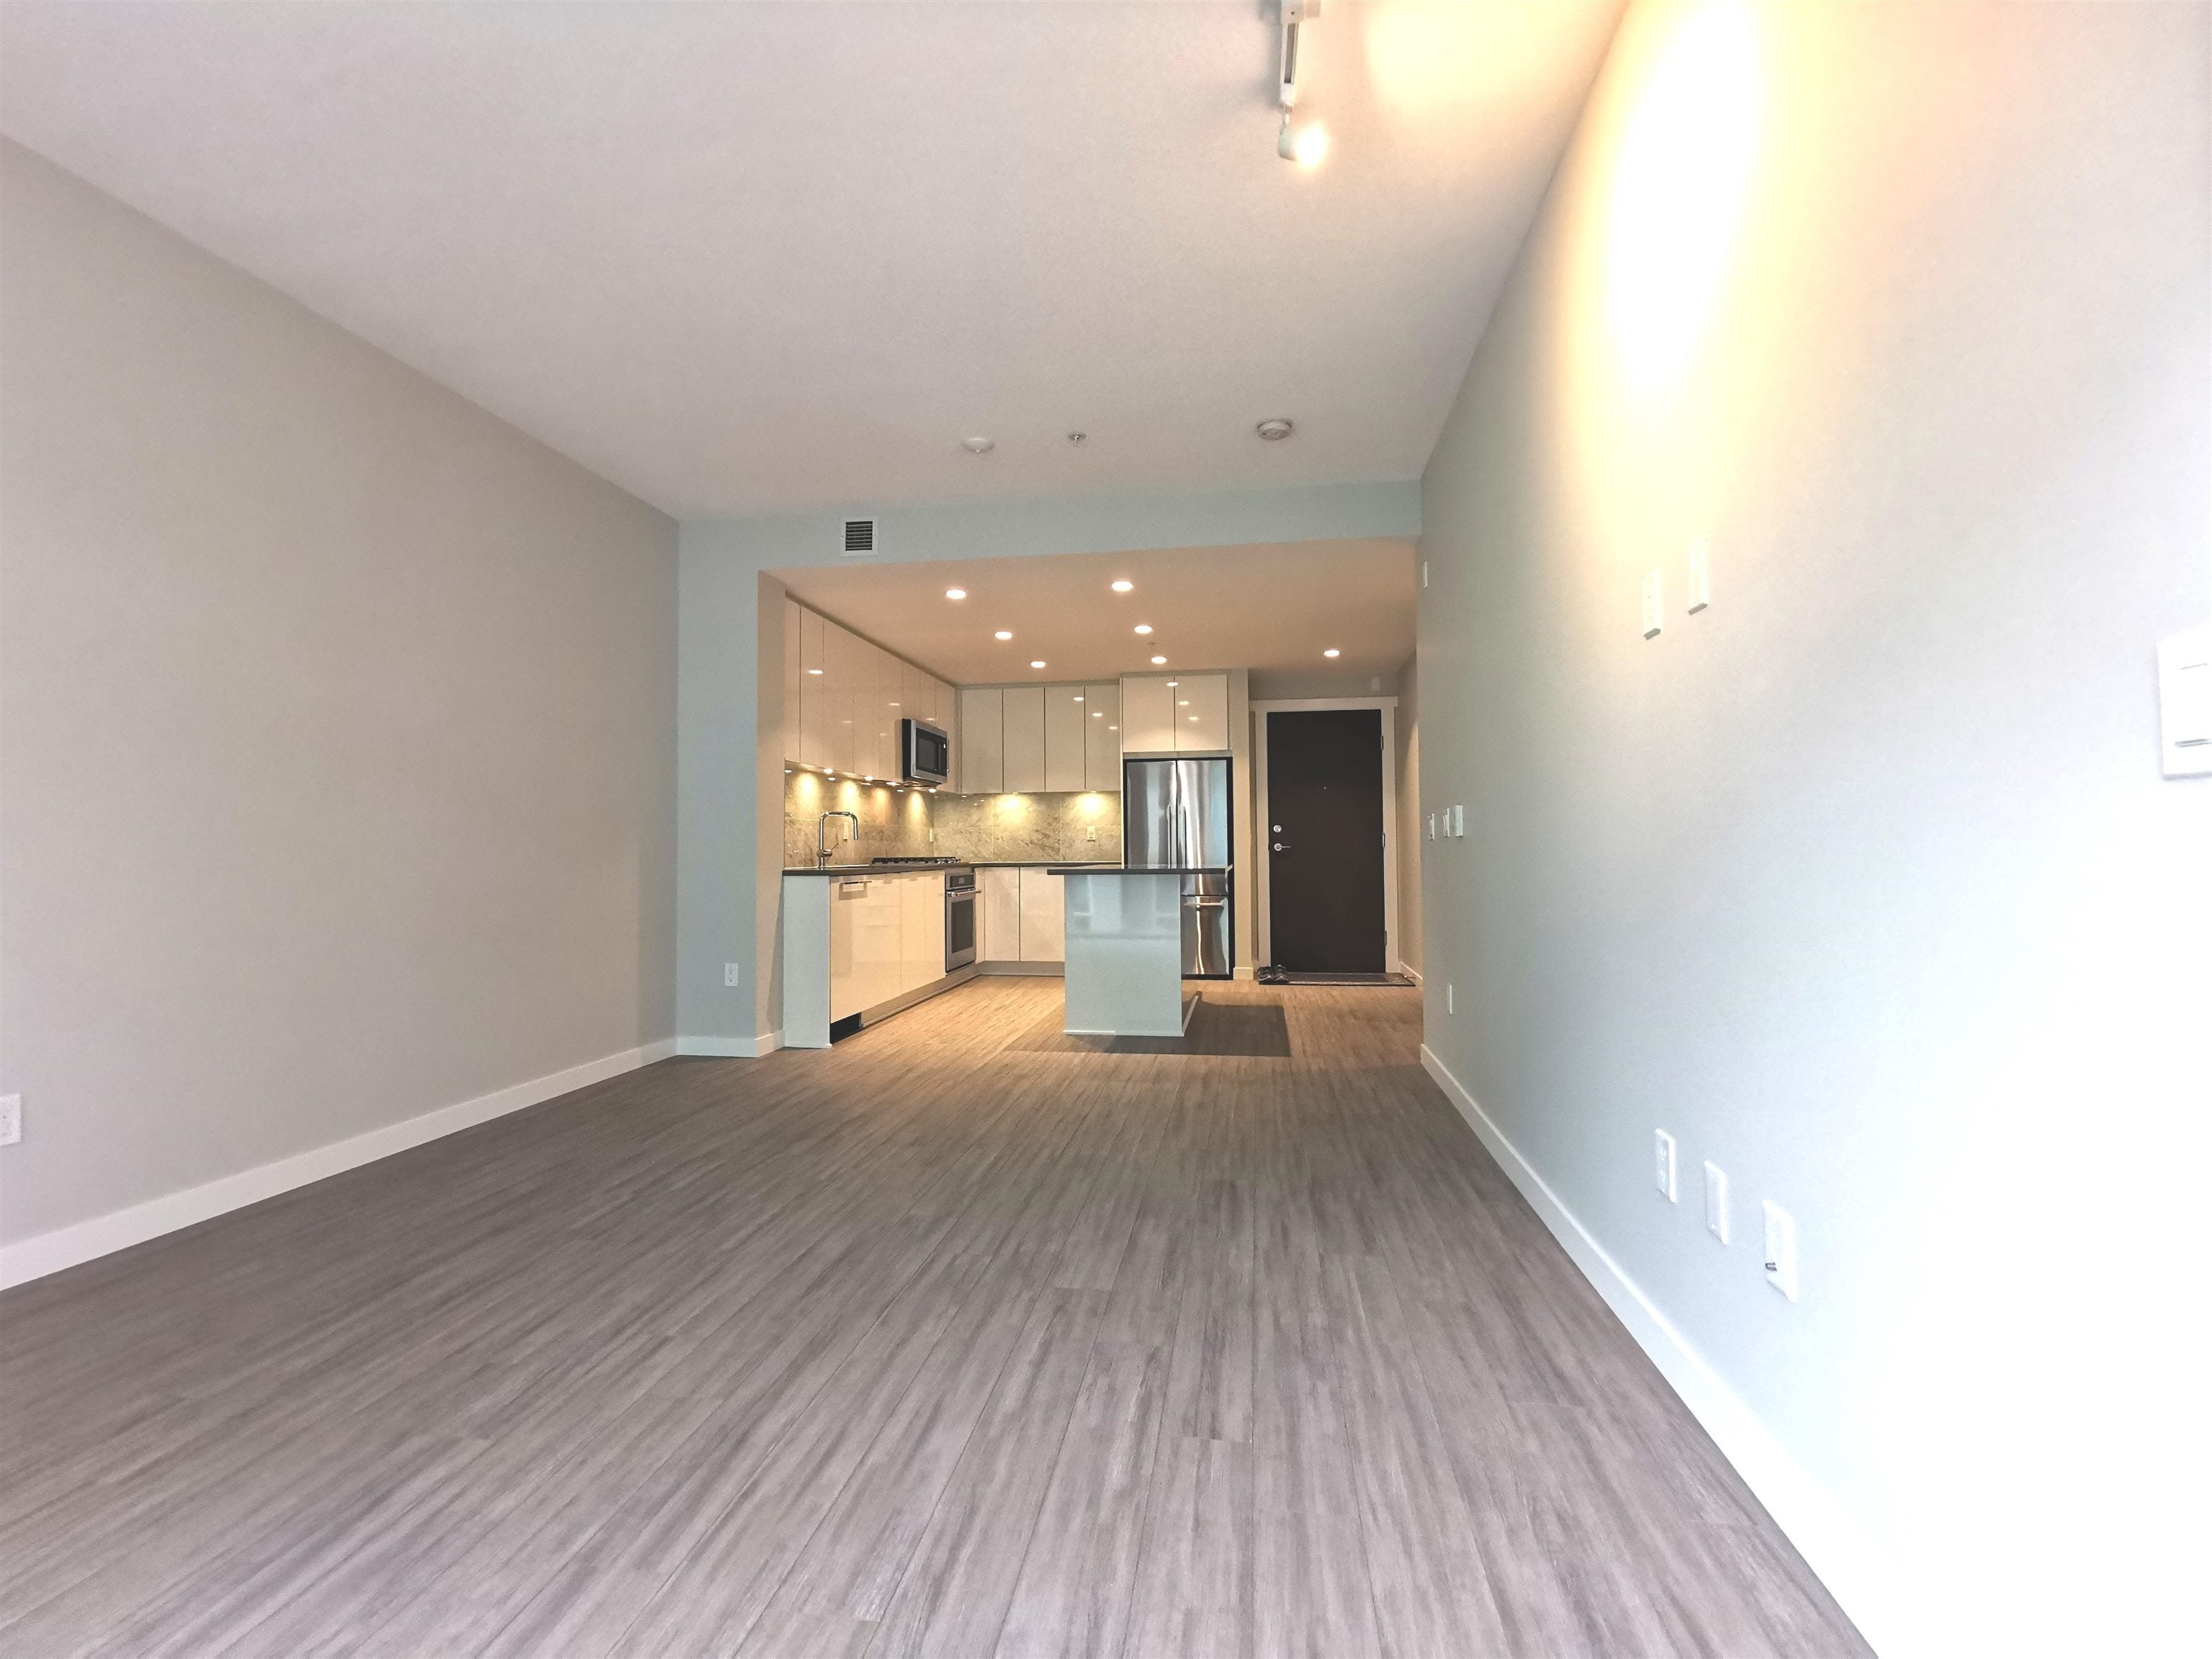 307 2651 LIBRARY LANE - Lynn Valley Apartment/Condo for sale, 2 Bedrooms (R2623451) - #16